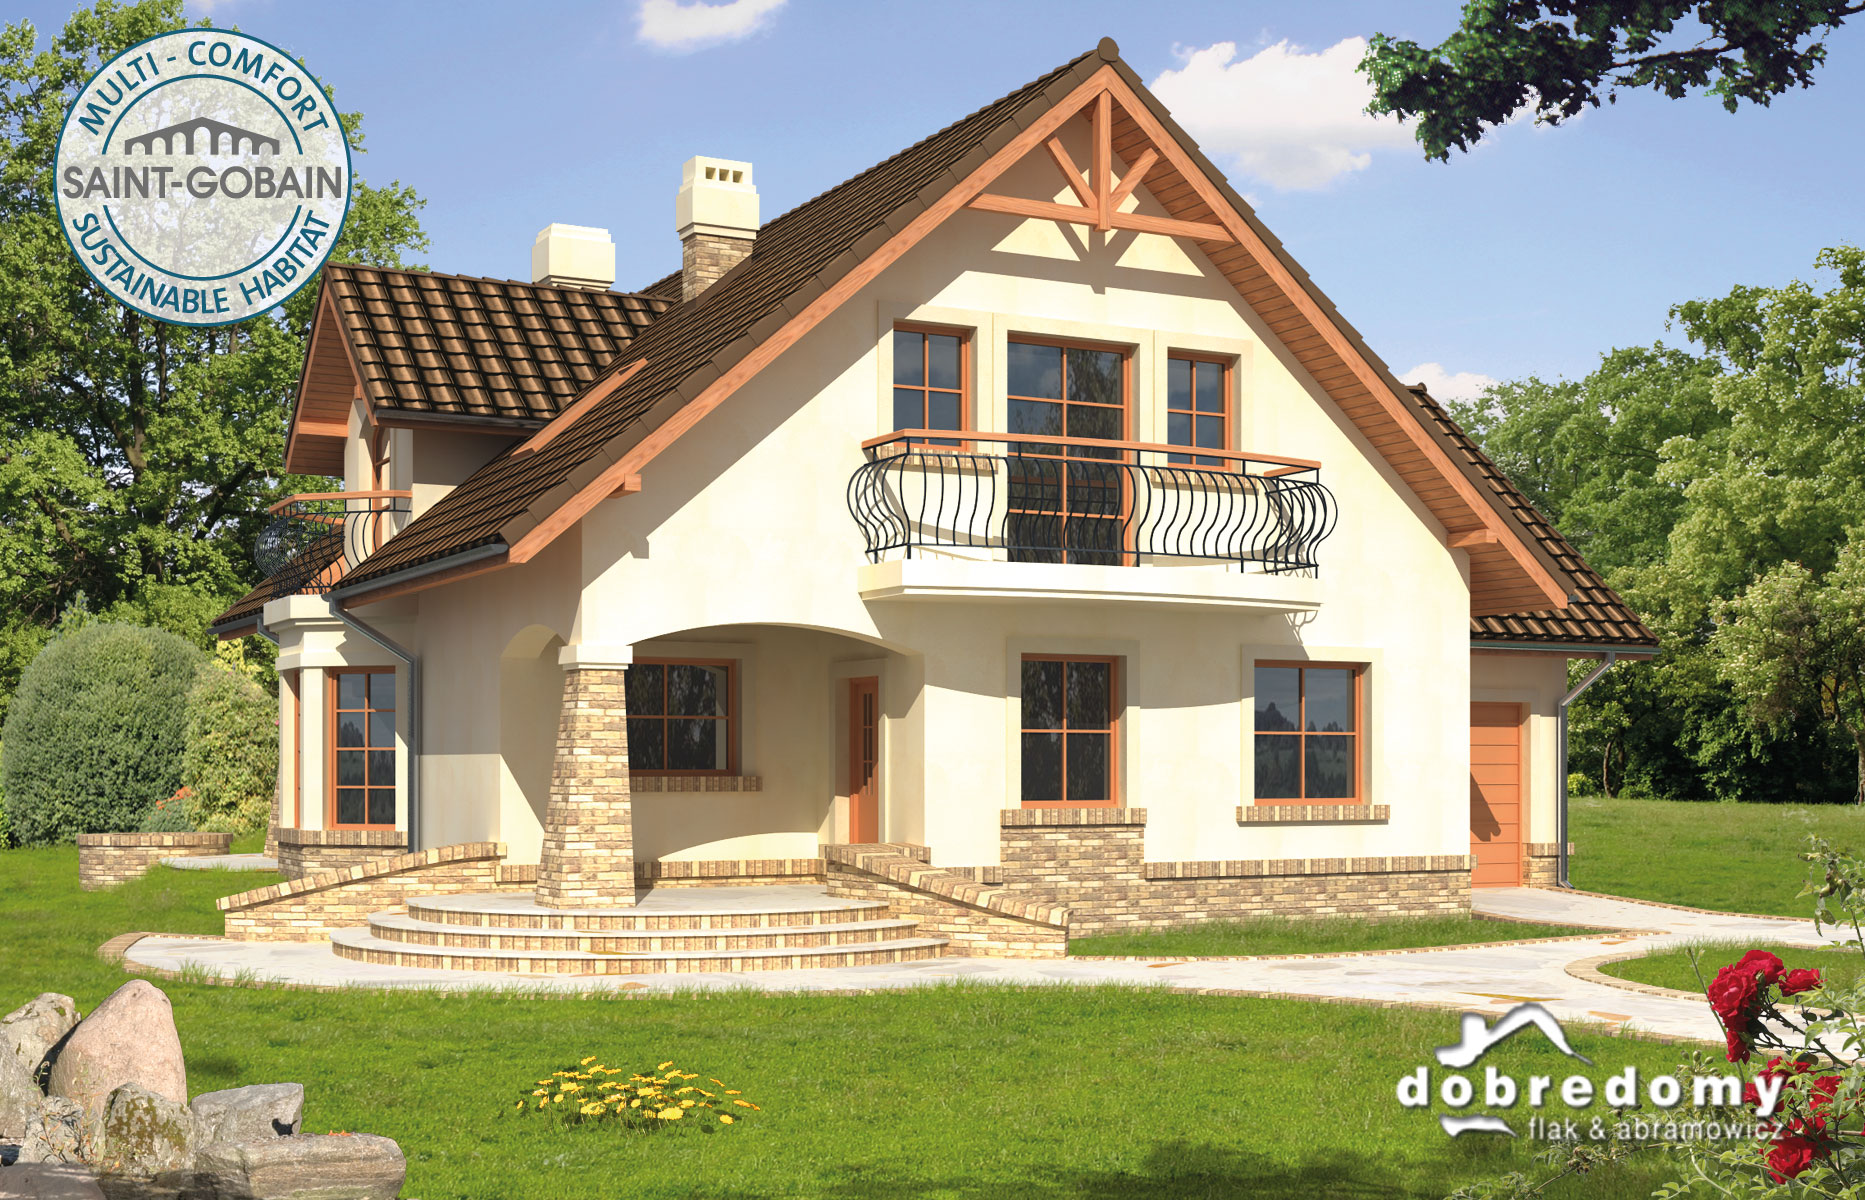 Finished house plans fa aridela i ce - dom.pl.